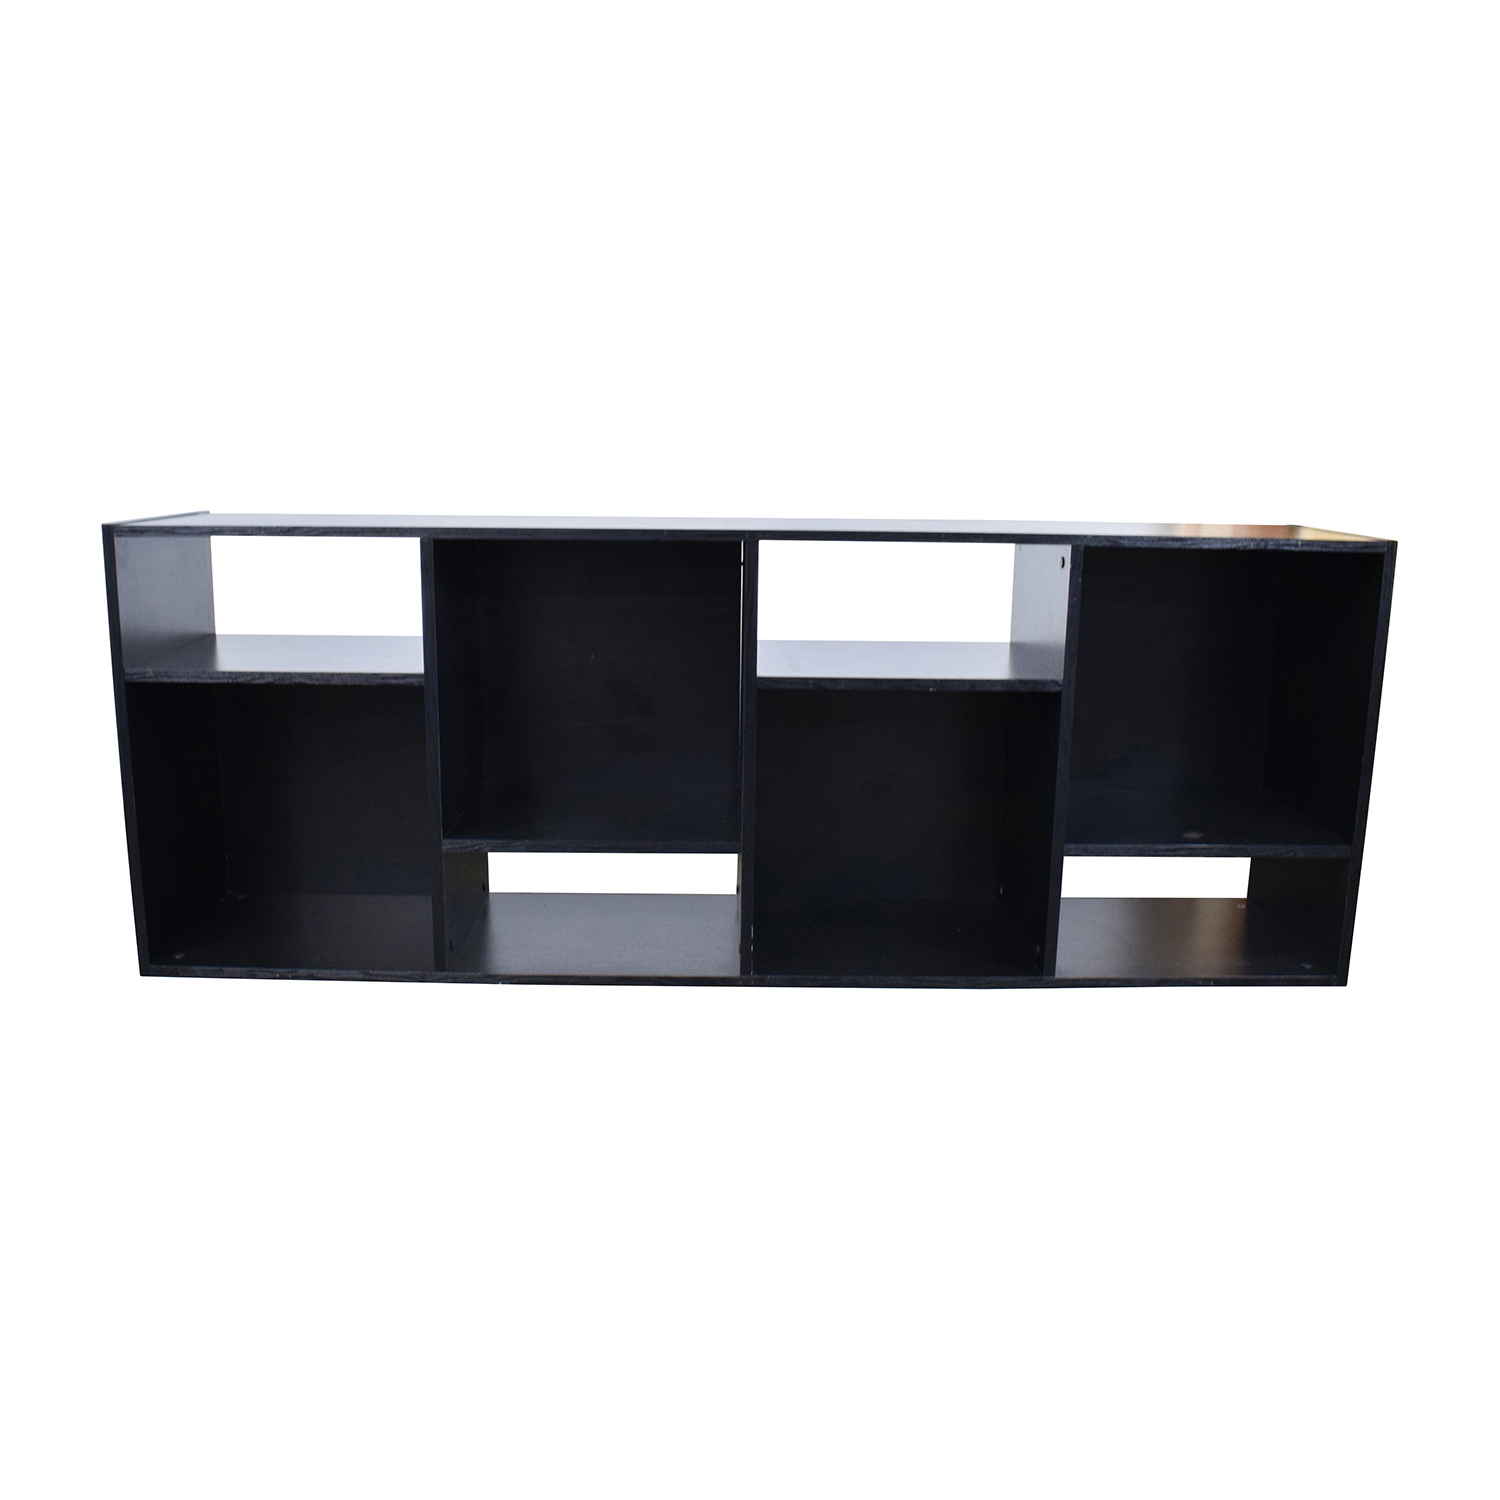 buy Crate & Barrel Black Shift Bookshelf Crate and Barrel